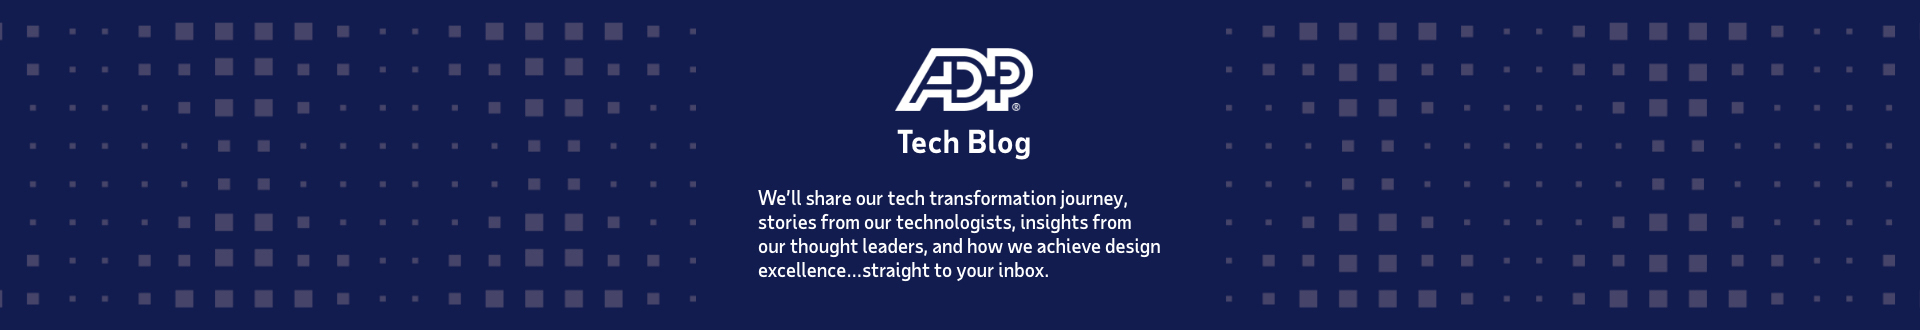 Tech Blog - We'll share our tech transformation journey, stories from our technologists, insights from our though leaders, and how we can achieve design excellence... straight to your inbox